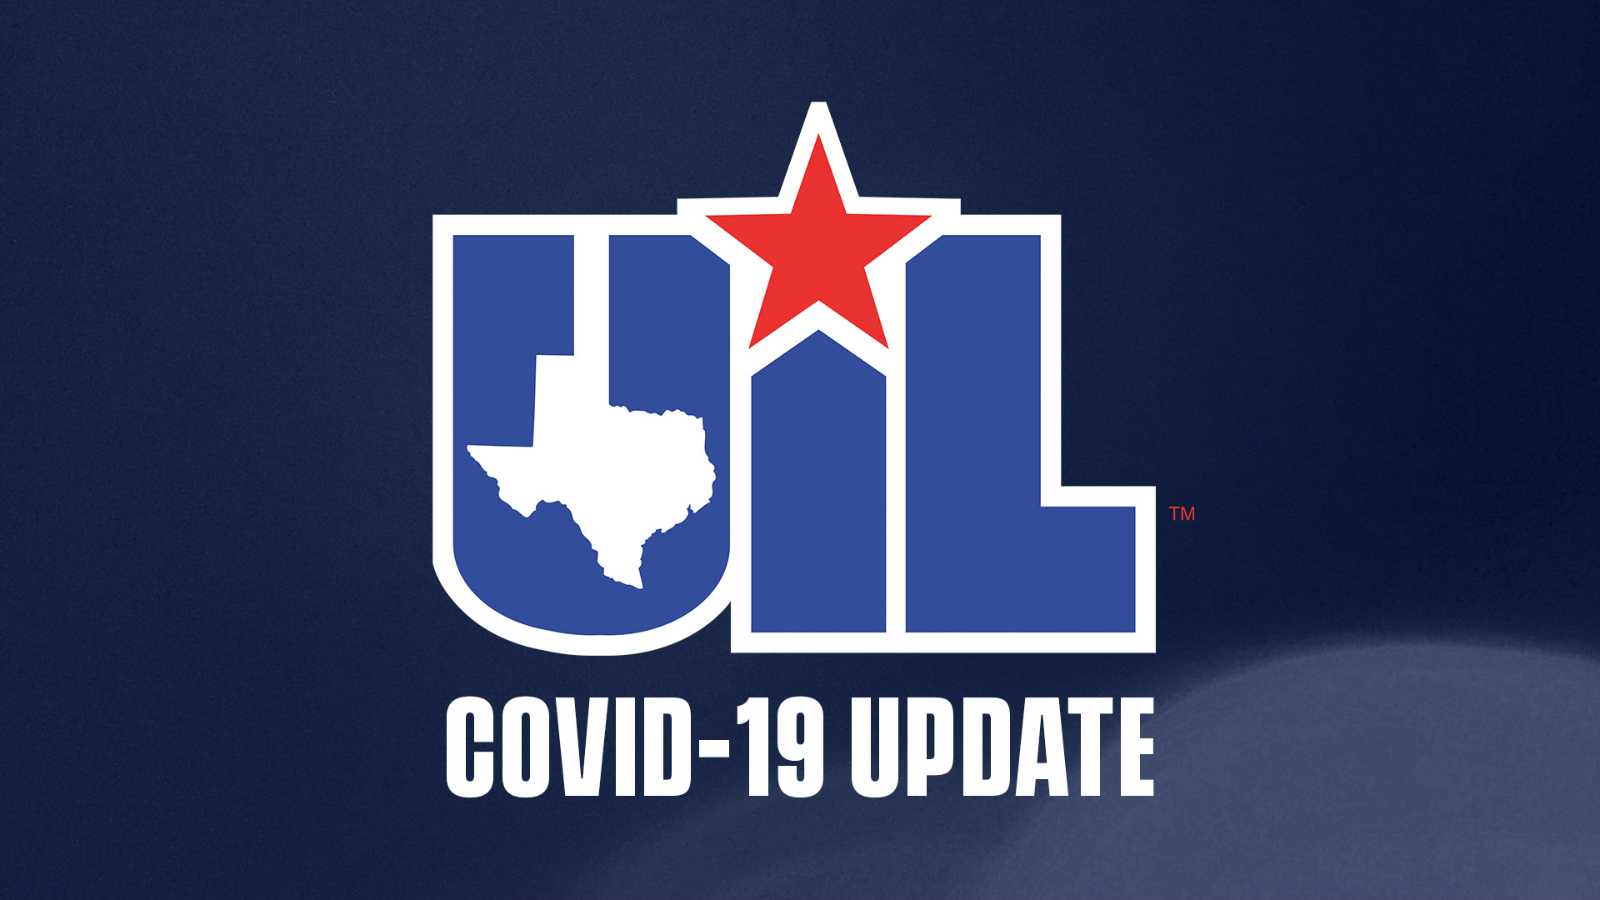 The UIL requires a student athlete to be cleared by a physician if they have tested positive for Covid-19.